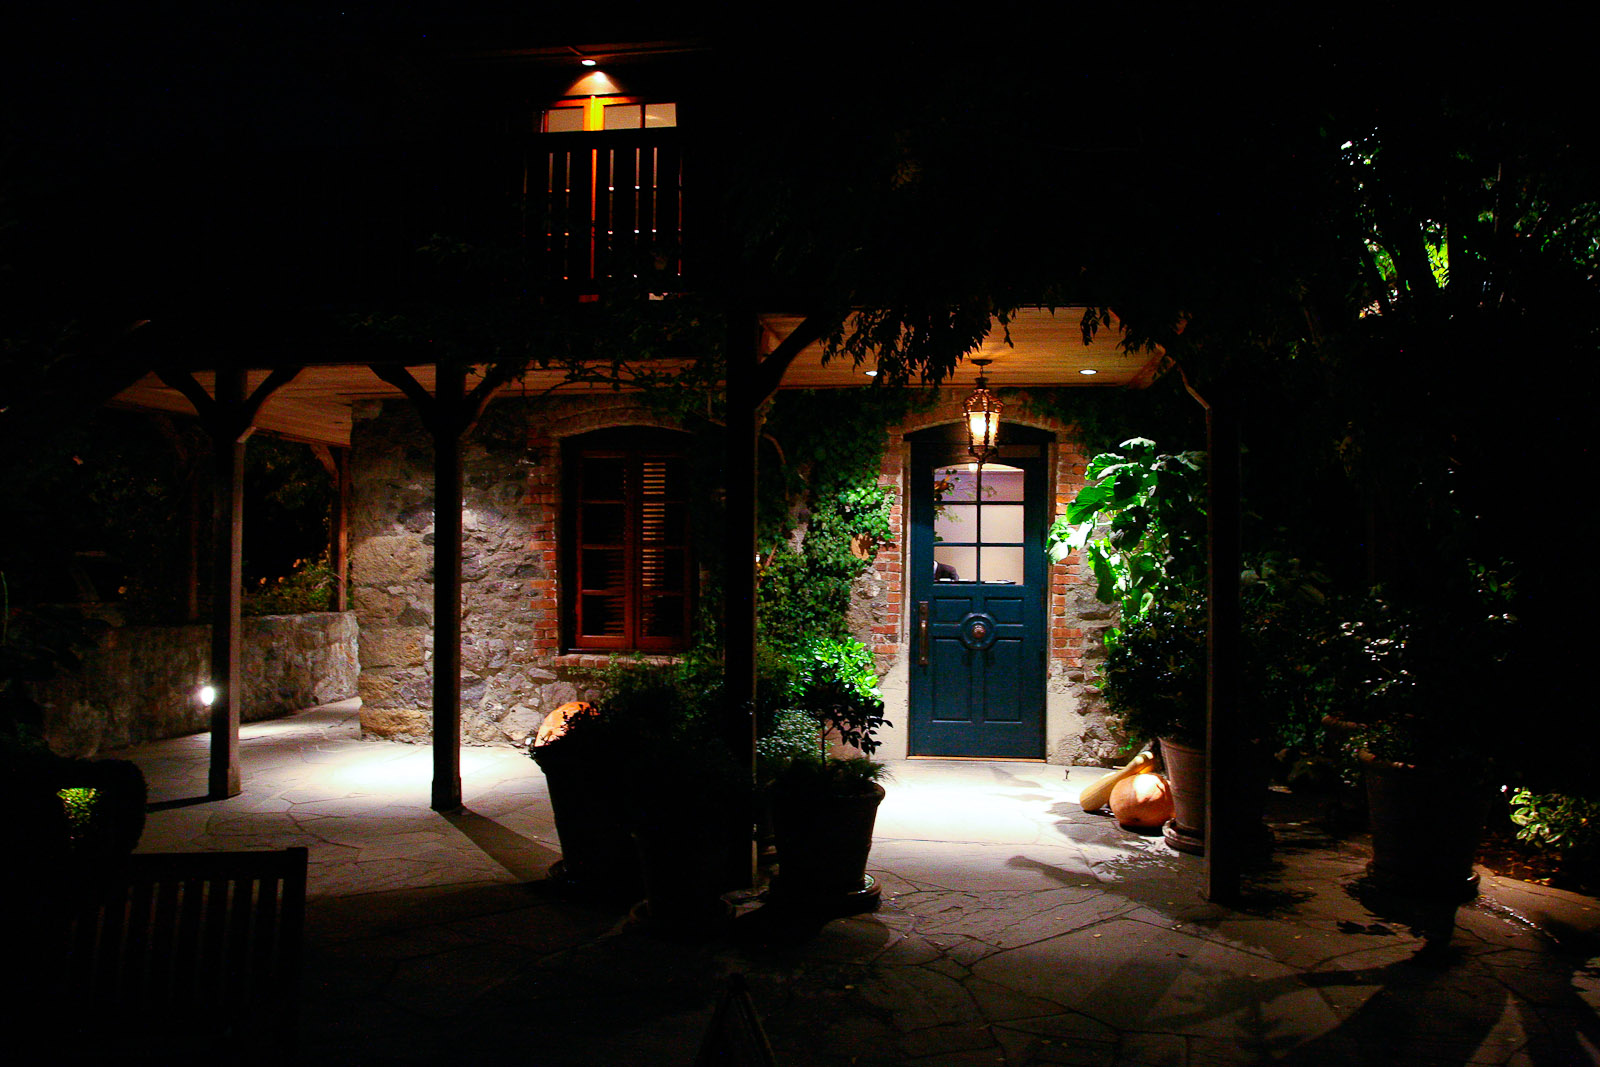 The-French-Laundry-Yountville-California-Entrance.jpg